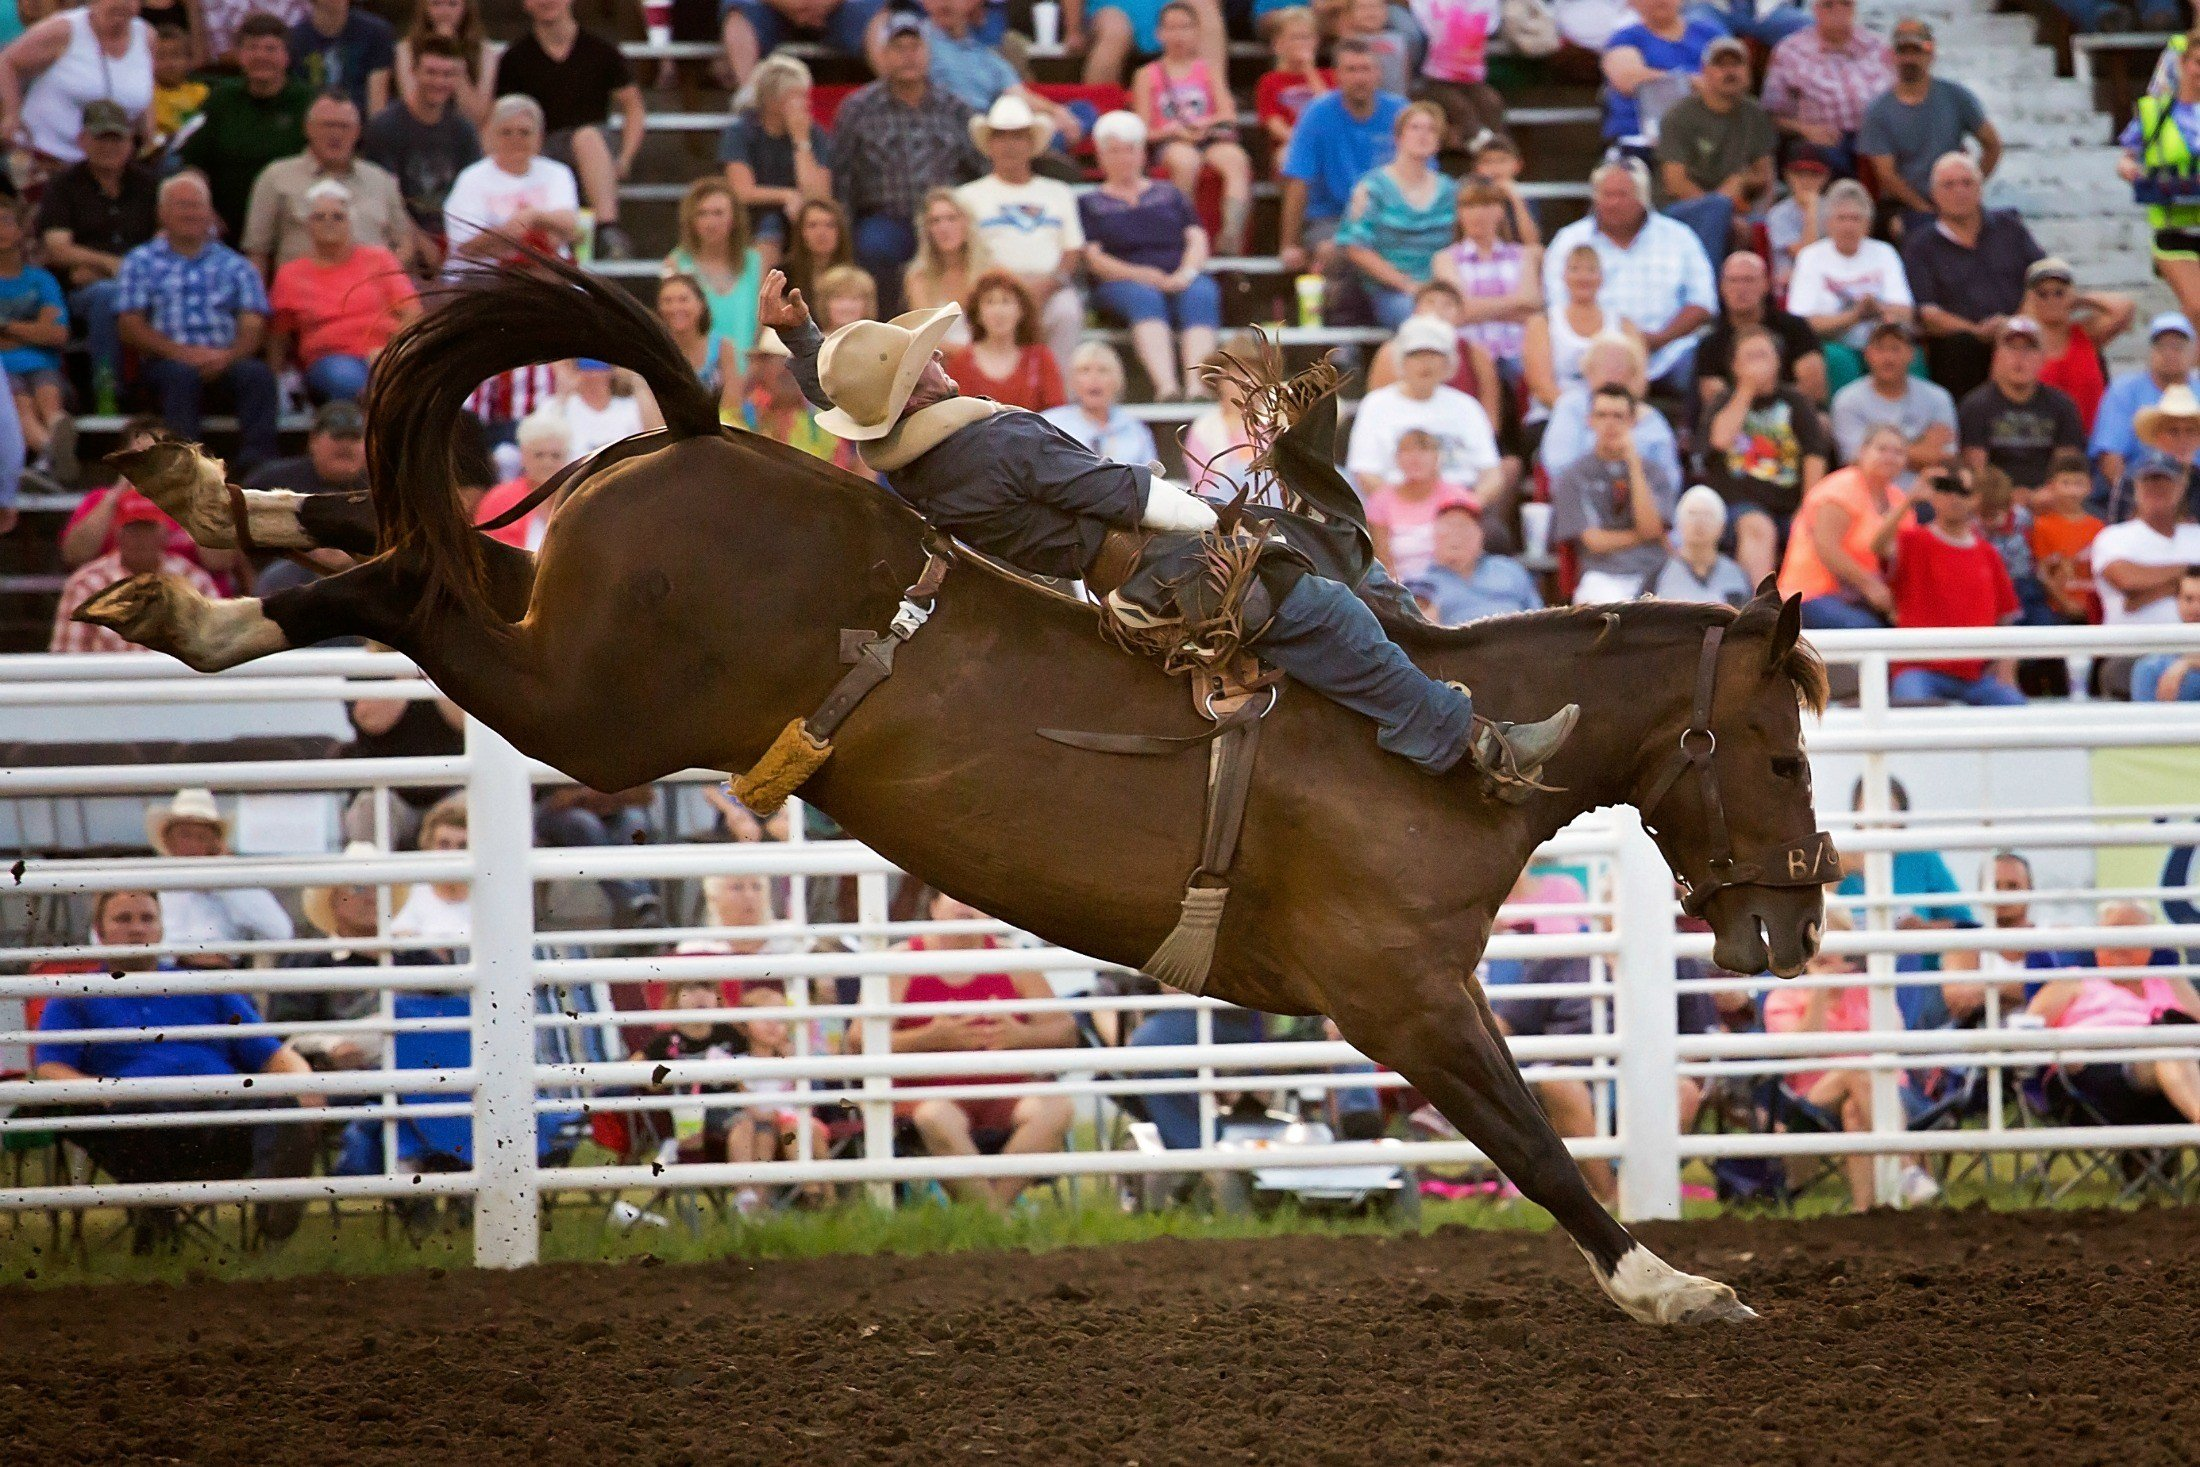 A bareback rider competes at the 2015 Inter-State Fair and Rodeo in Coffeyville. This year's Fair and Rodeo is August 12-19 at Walter Johnson Park. Photo by Quick Draw Design.